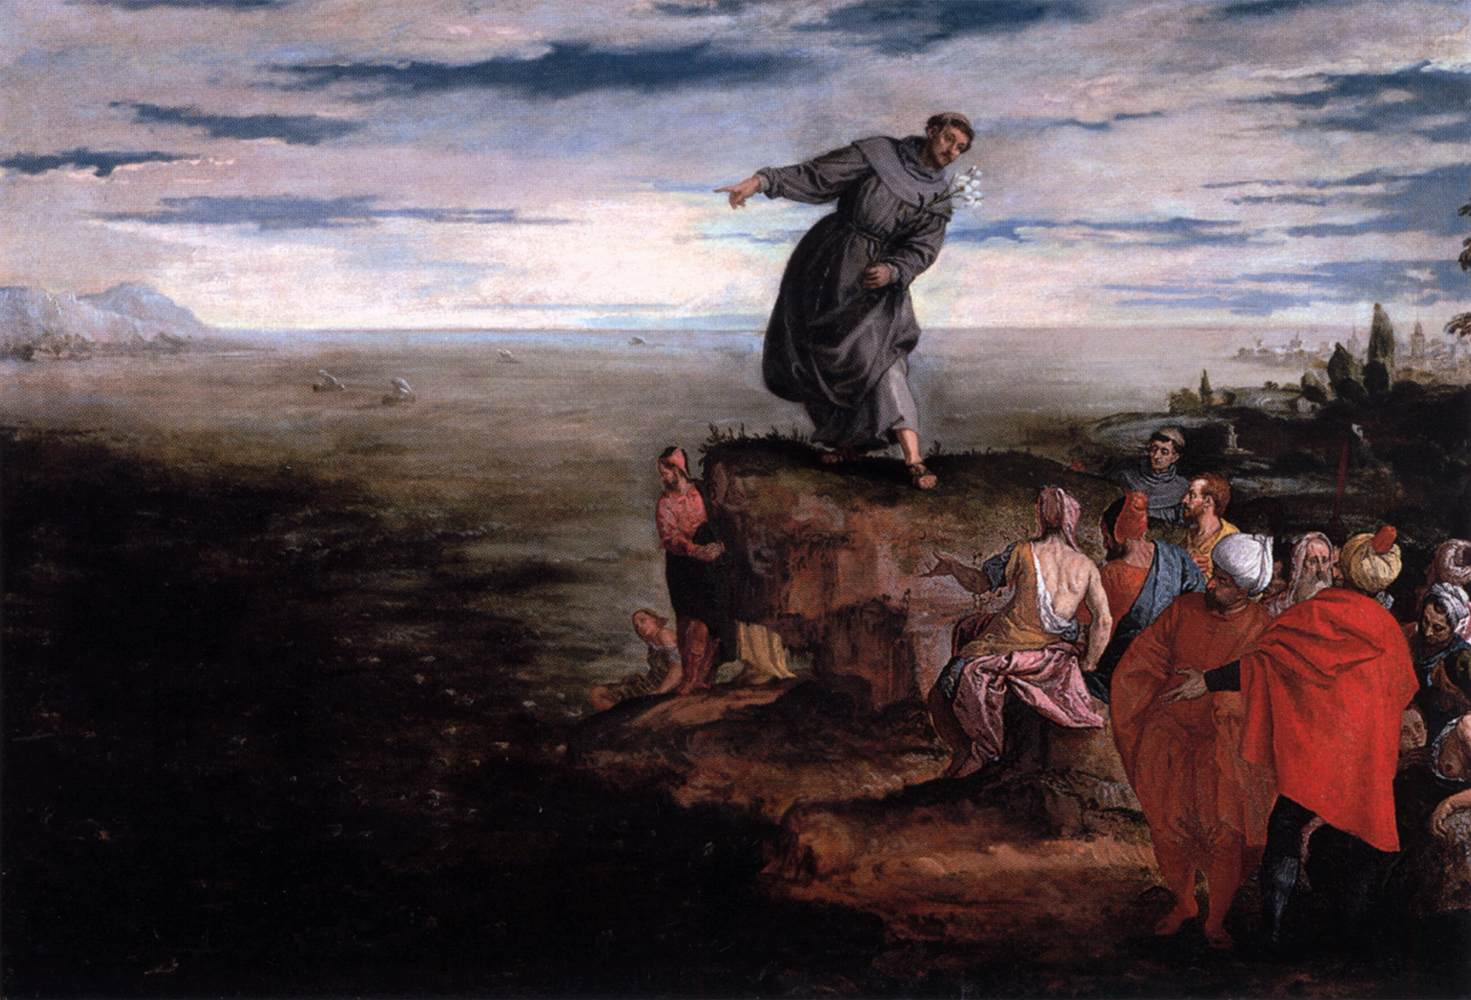 Saint Anthony preaches to the masses.